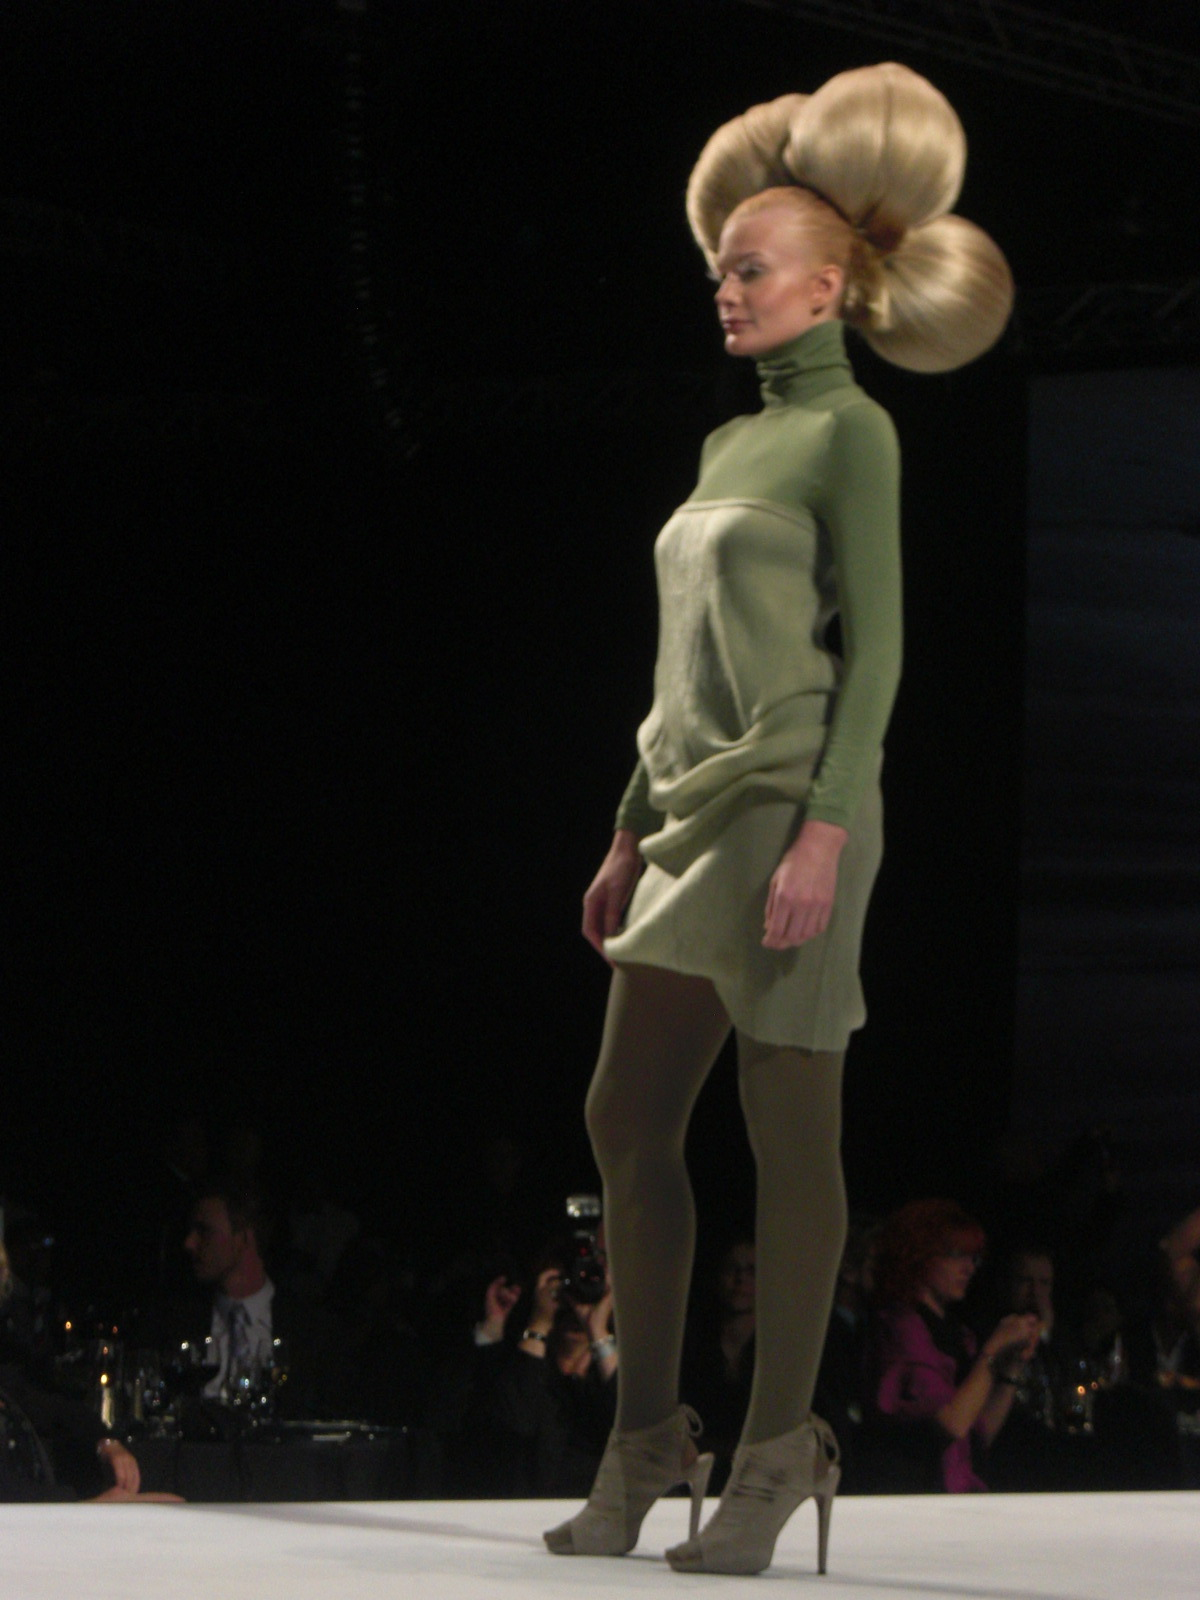 The opening number featured desert-inspired looks